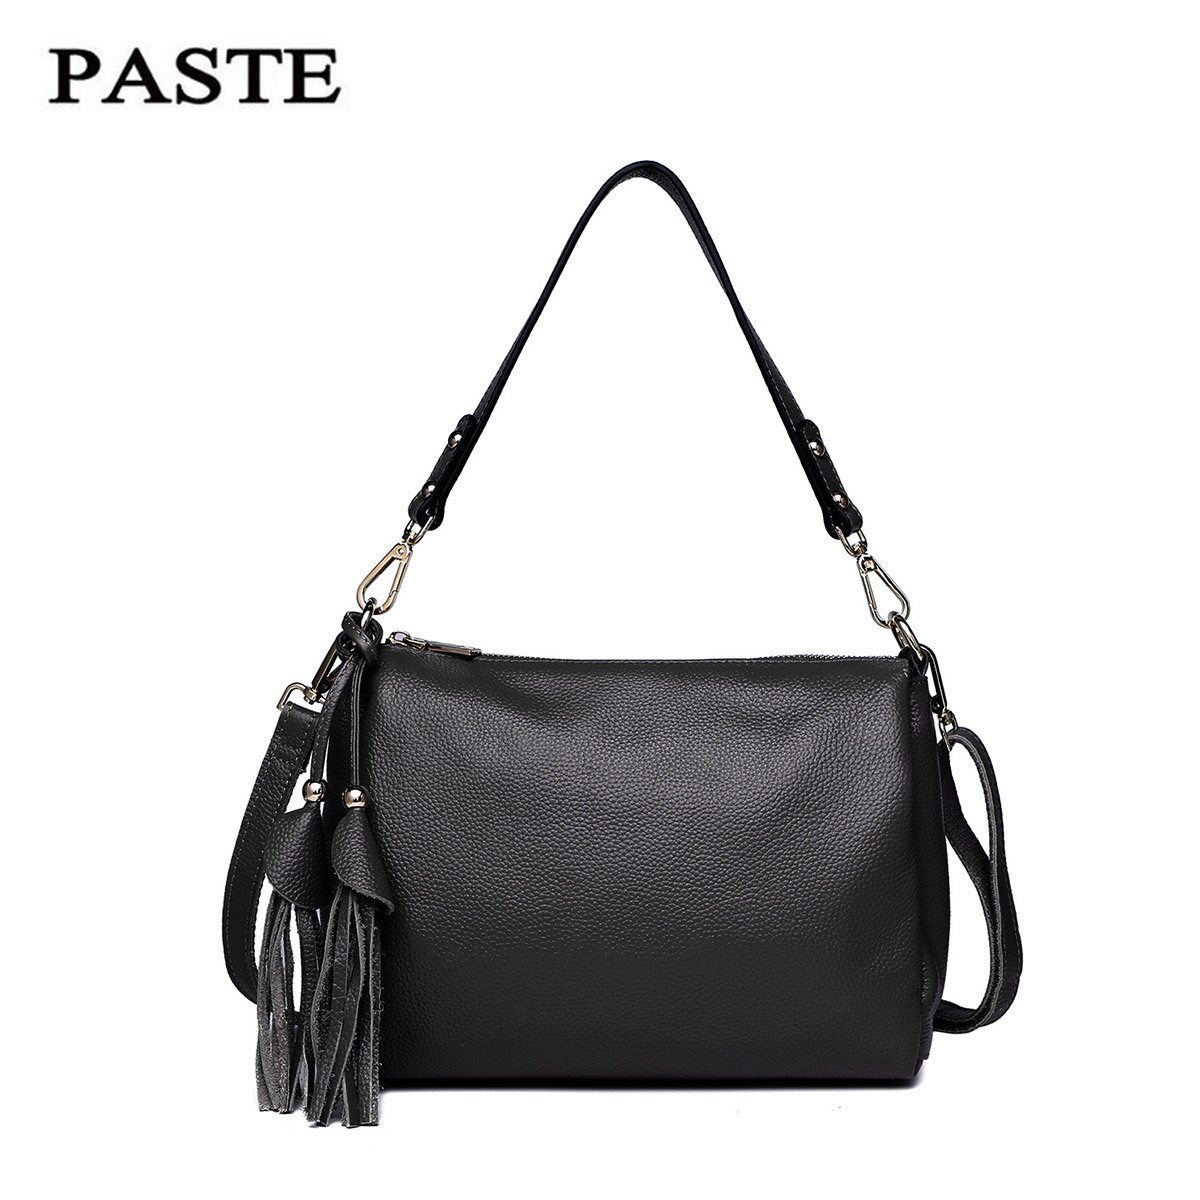 100% Nature Cowhide Summer Bags For Women Small Genuine Leather Shoulder Bag Female Designer Messenger&Cross body Bag PT47 new women bags pu leather fashion small shell bag women shoulder bag summer casual female cross body bags for women